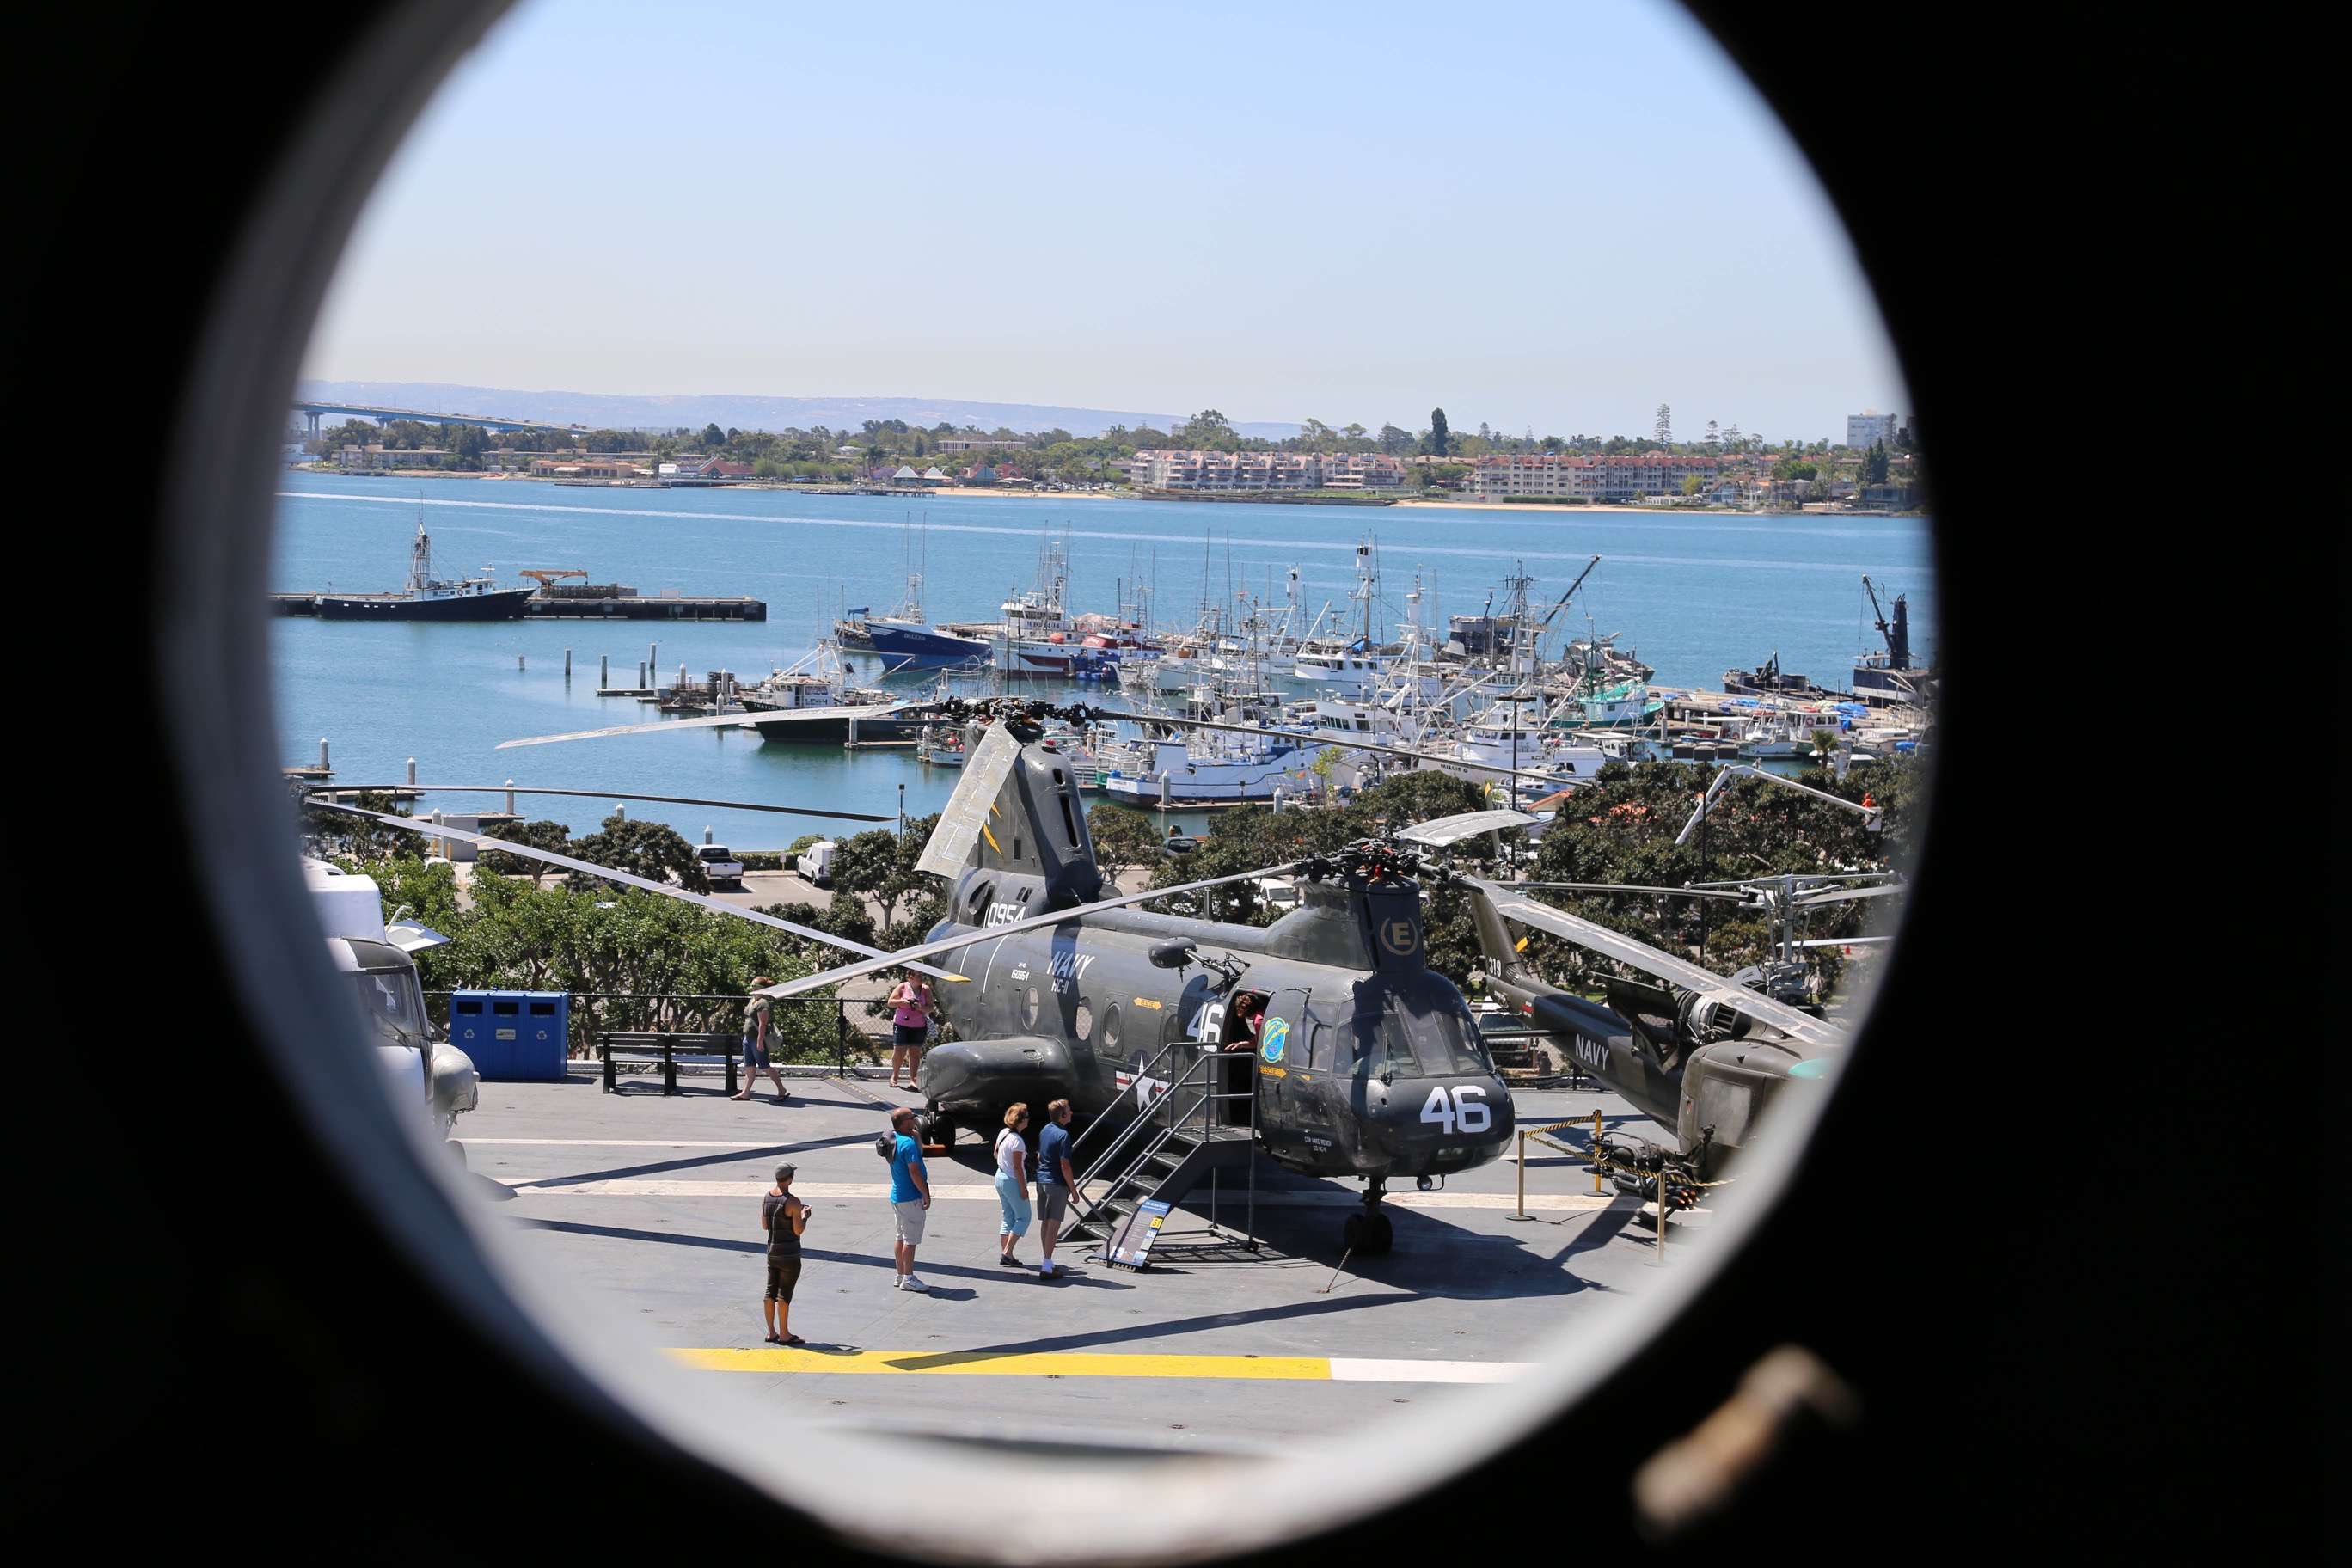 You can easily spend the entire day aboard the USS Midway, with great views from almost anywhere.